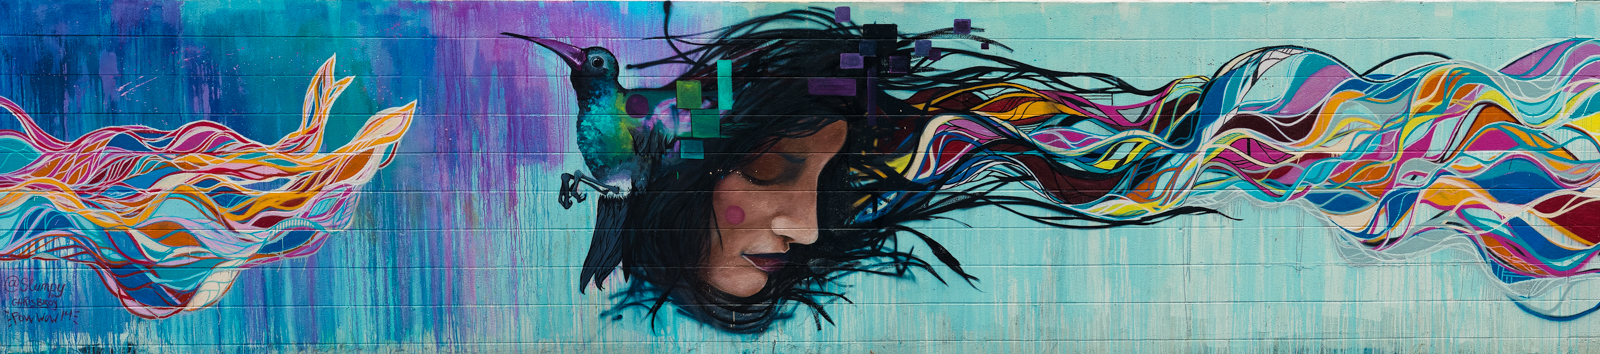 The Witness by Chris Broy for Pow Wow Hawaii